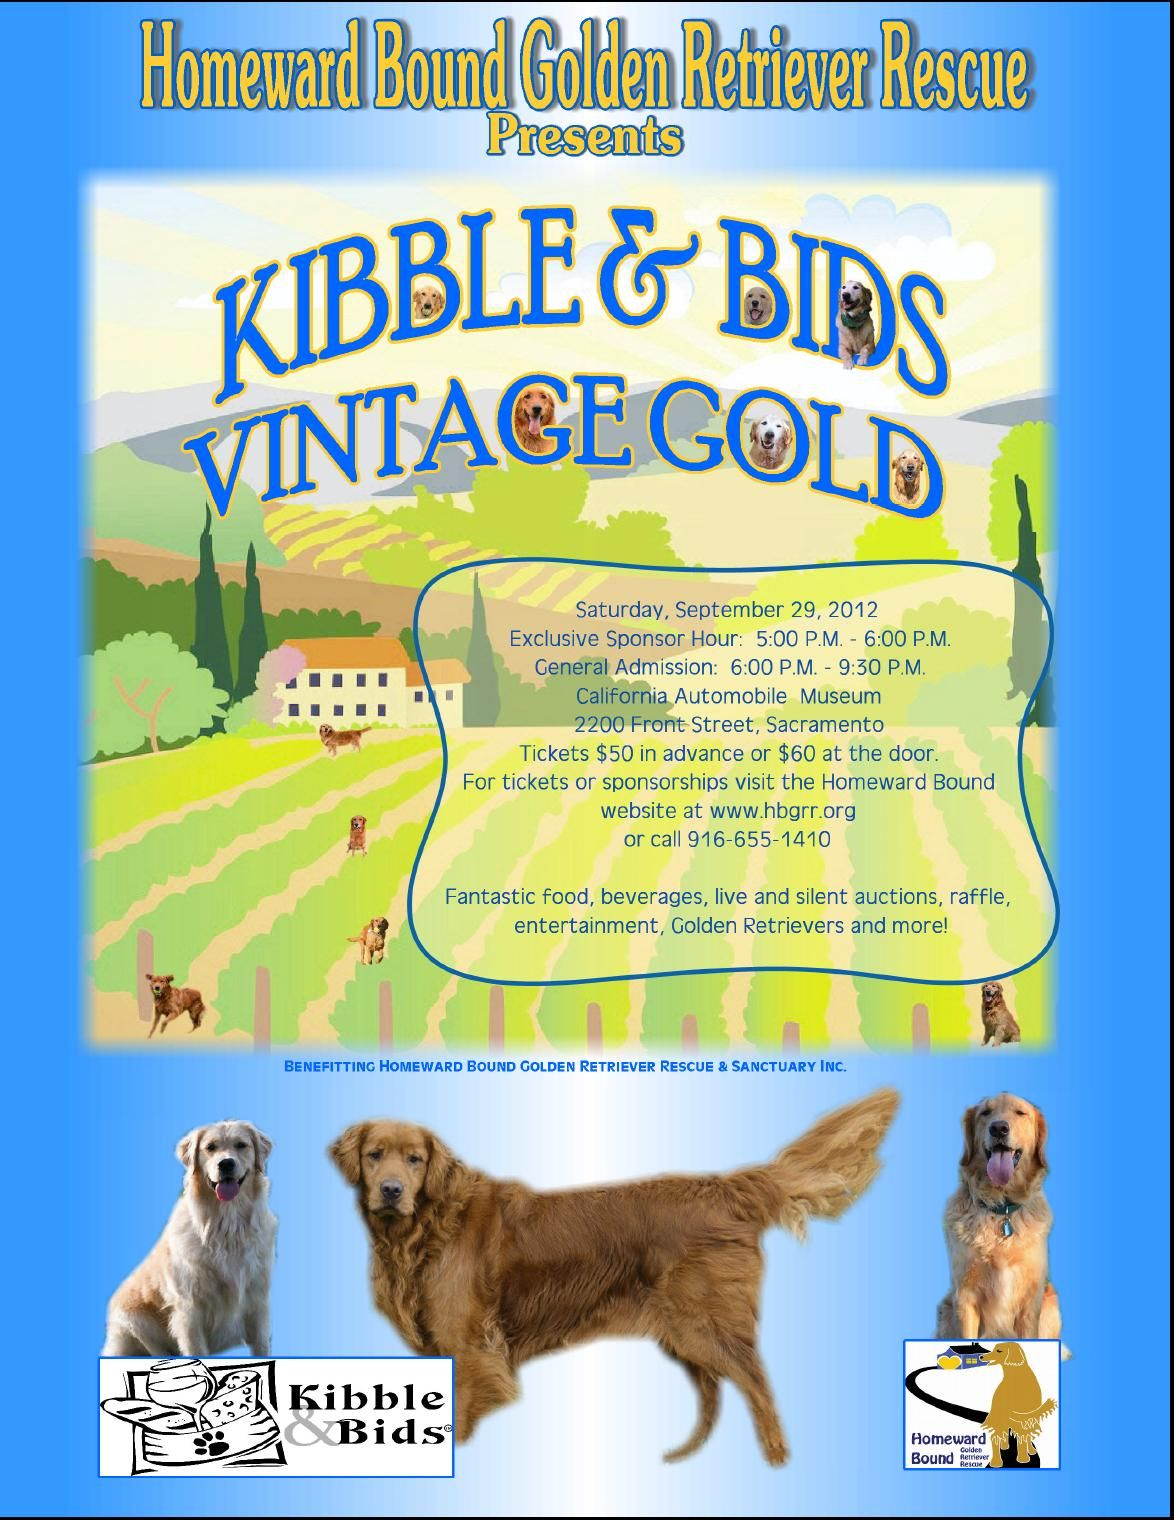 Sept 28th Kibbles Bids Silent Auction Raffle Entertainment And More To Benefit Homeward Bound Golden Retri Golden Retriever Rescue Golden Retriever Event